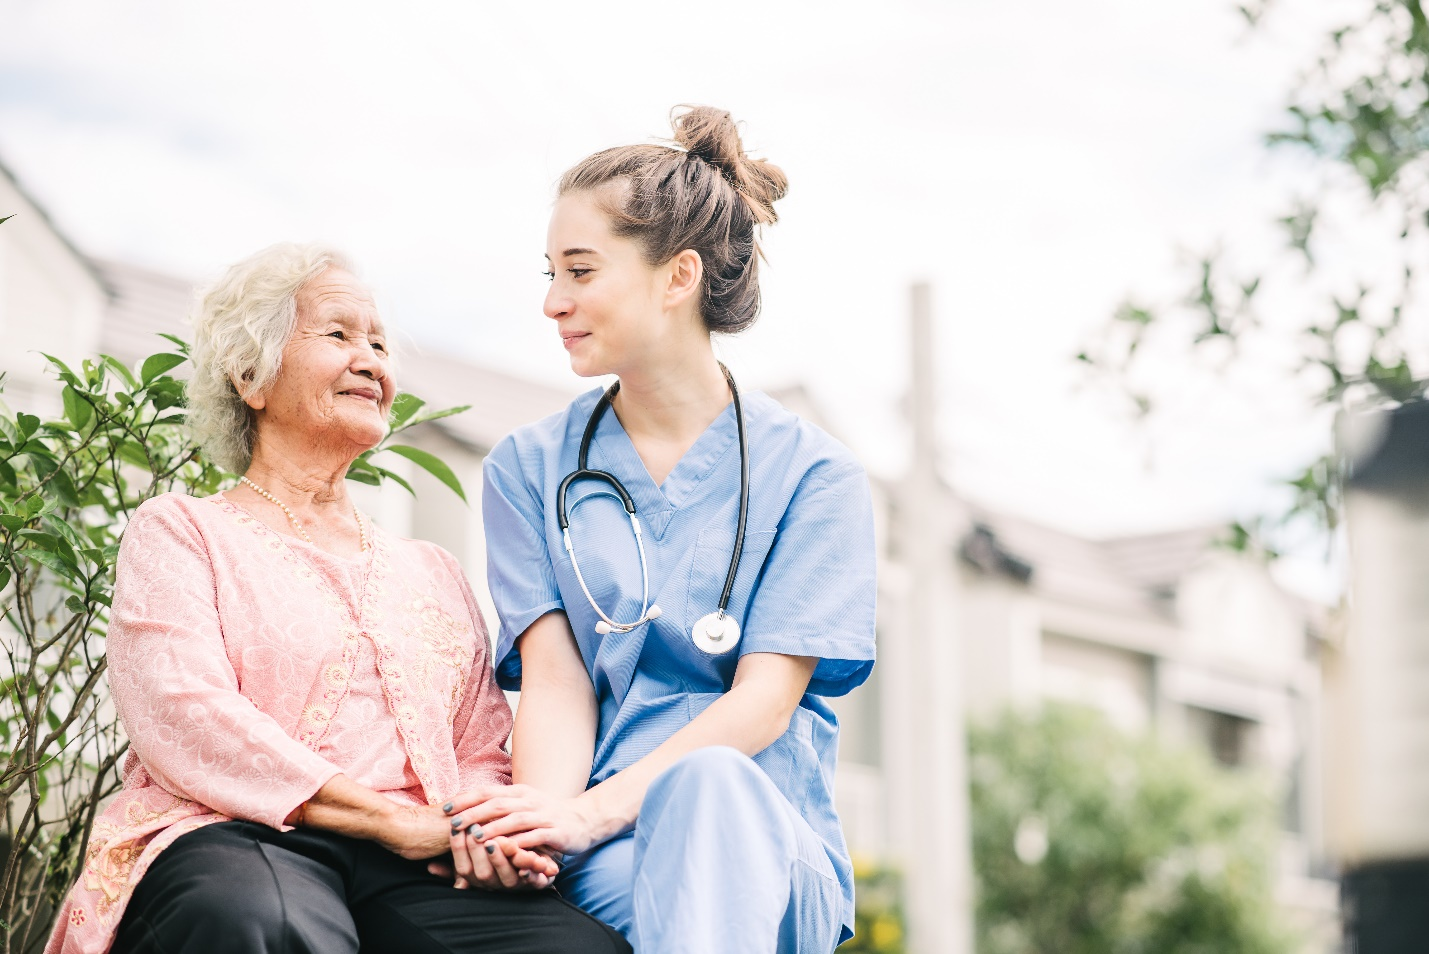 Smiling nurse caregiver holding hand of happy elderly woman outdoor in the park